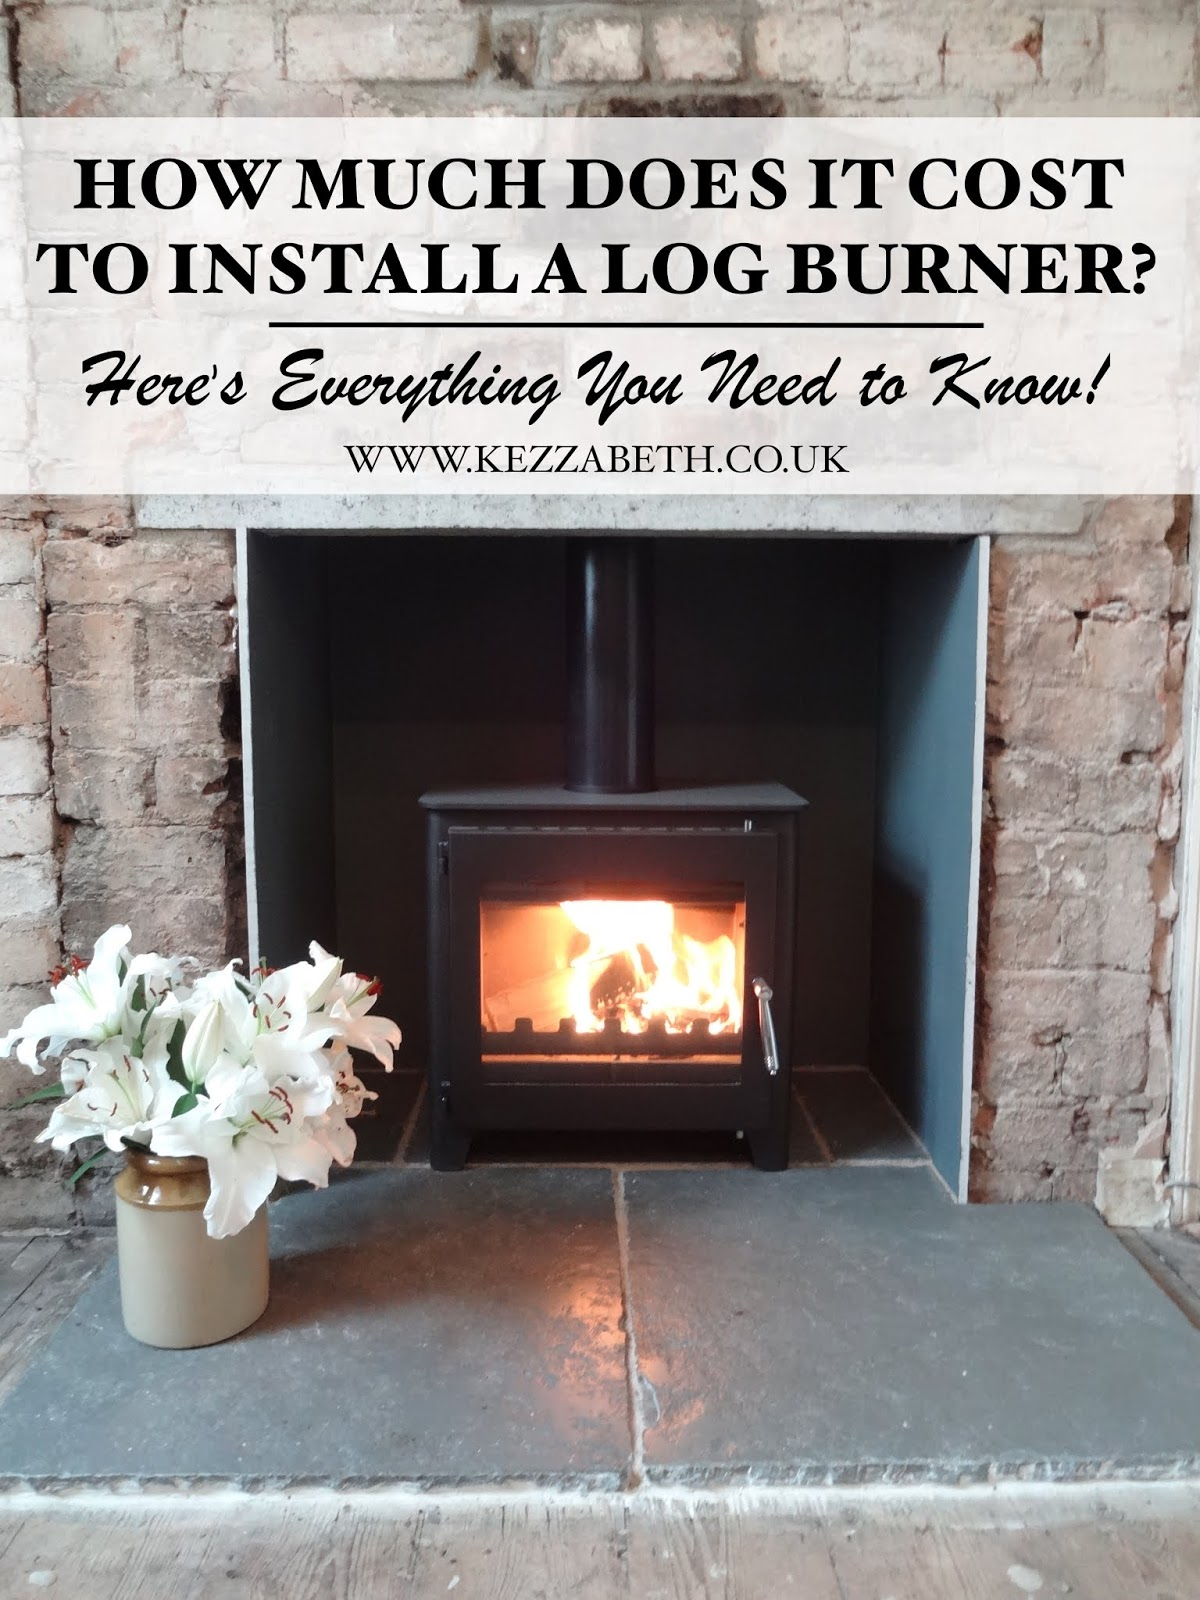 How much does it cost to install a wood burner?